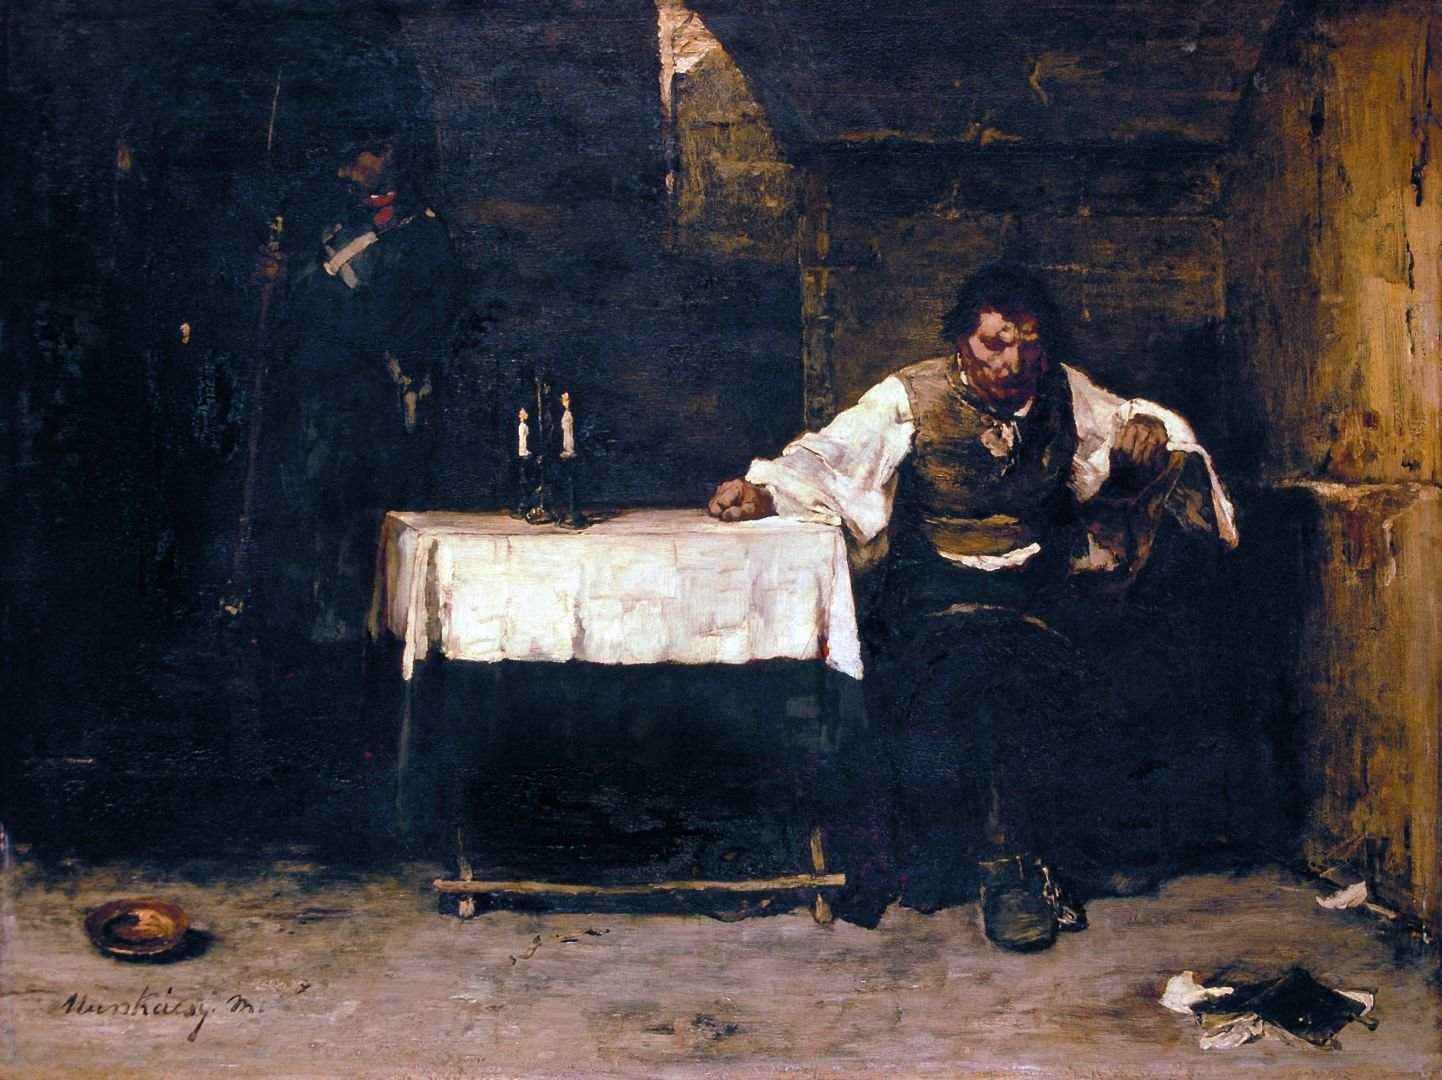 20th of February – The birthday of Mihály Munkácsy, the famous Hungarian painter